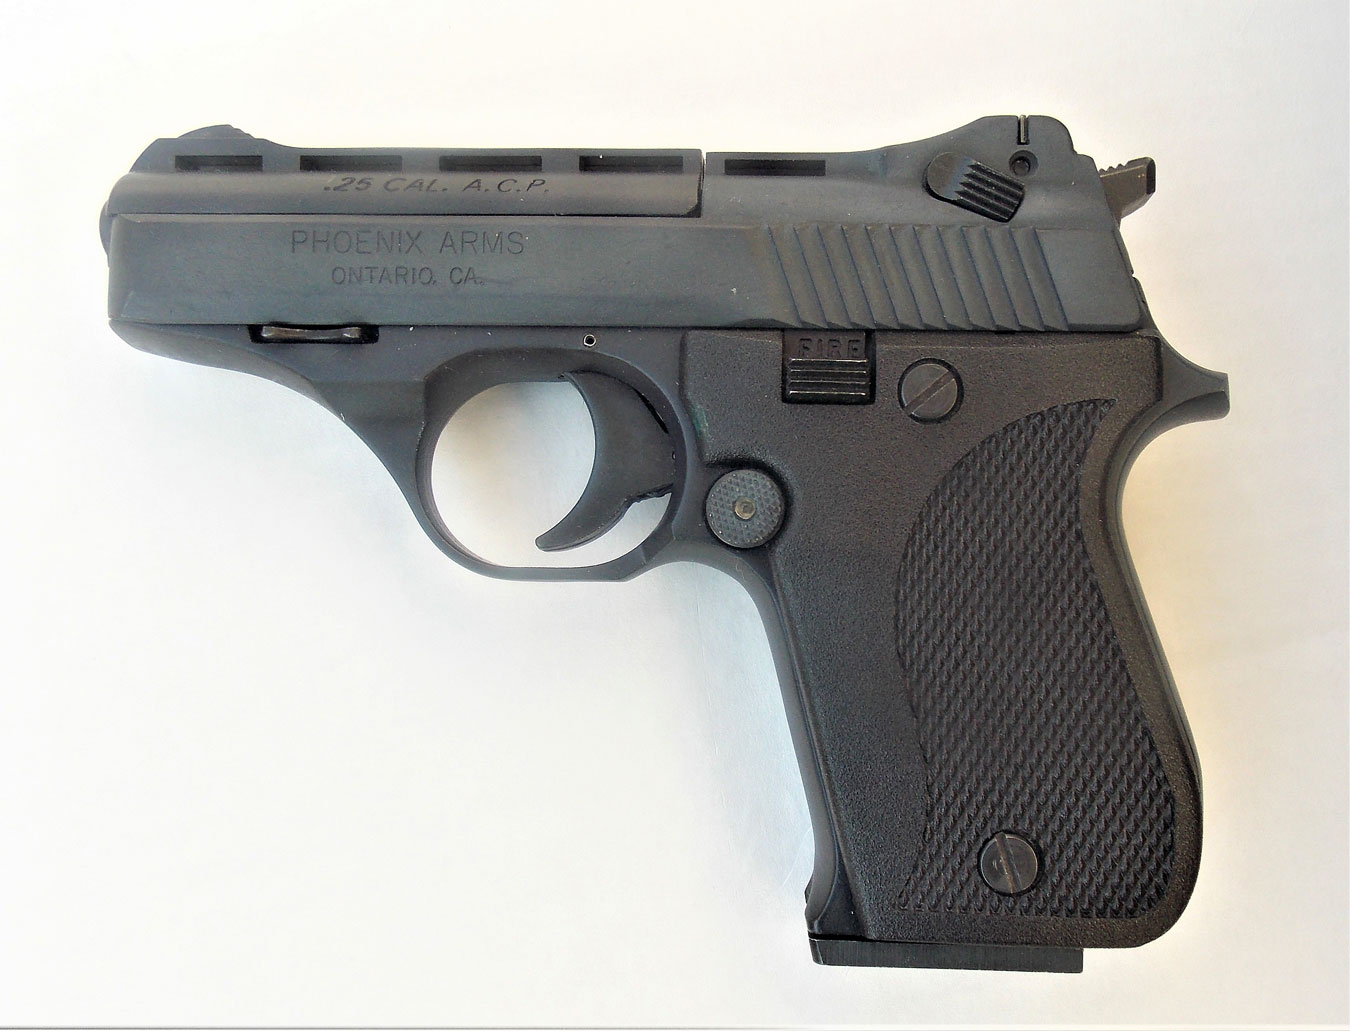 The pistol features good workmanship and proved reliable.